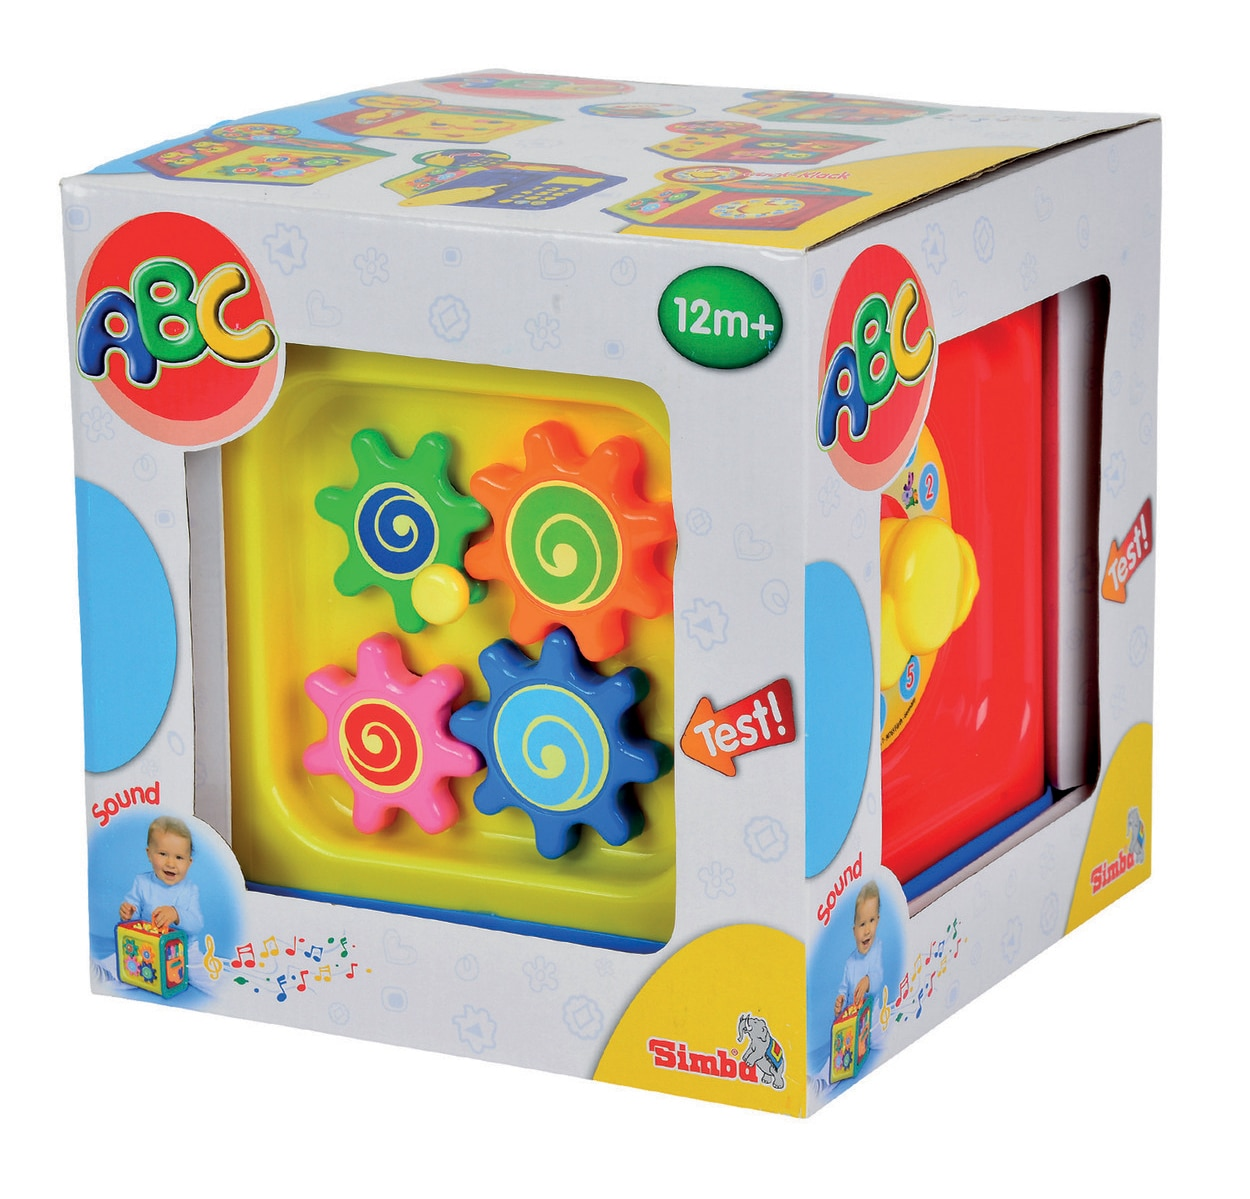 Simba Toy Play And Learn